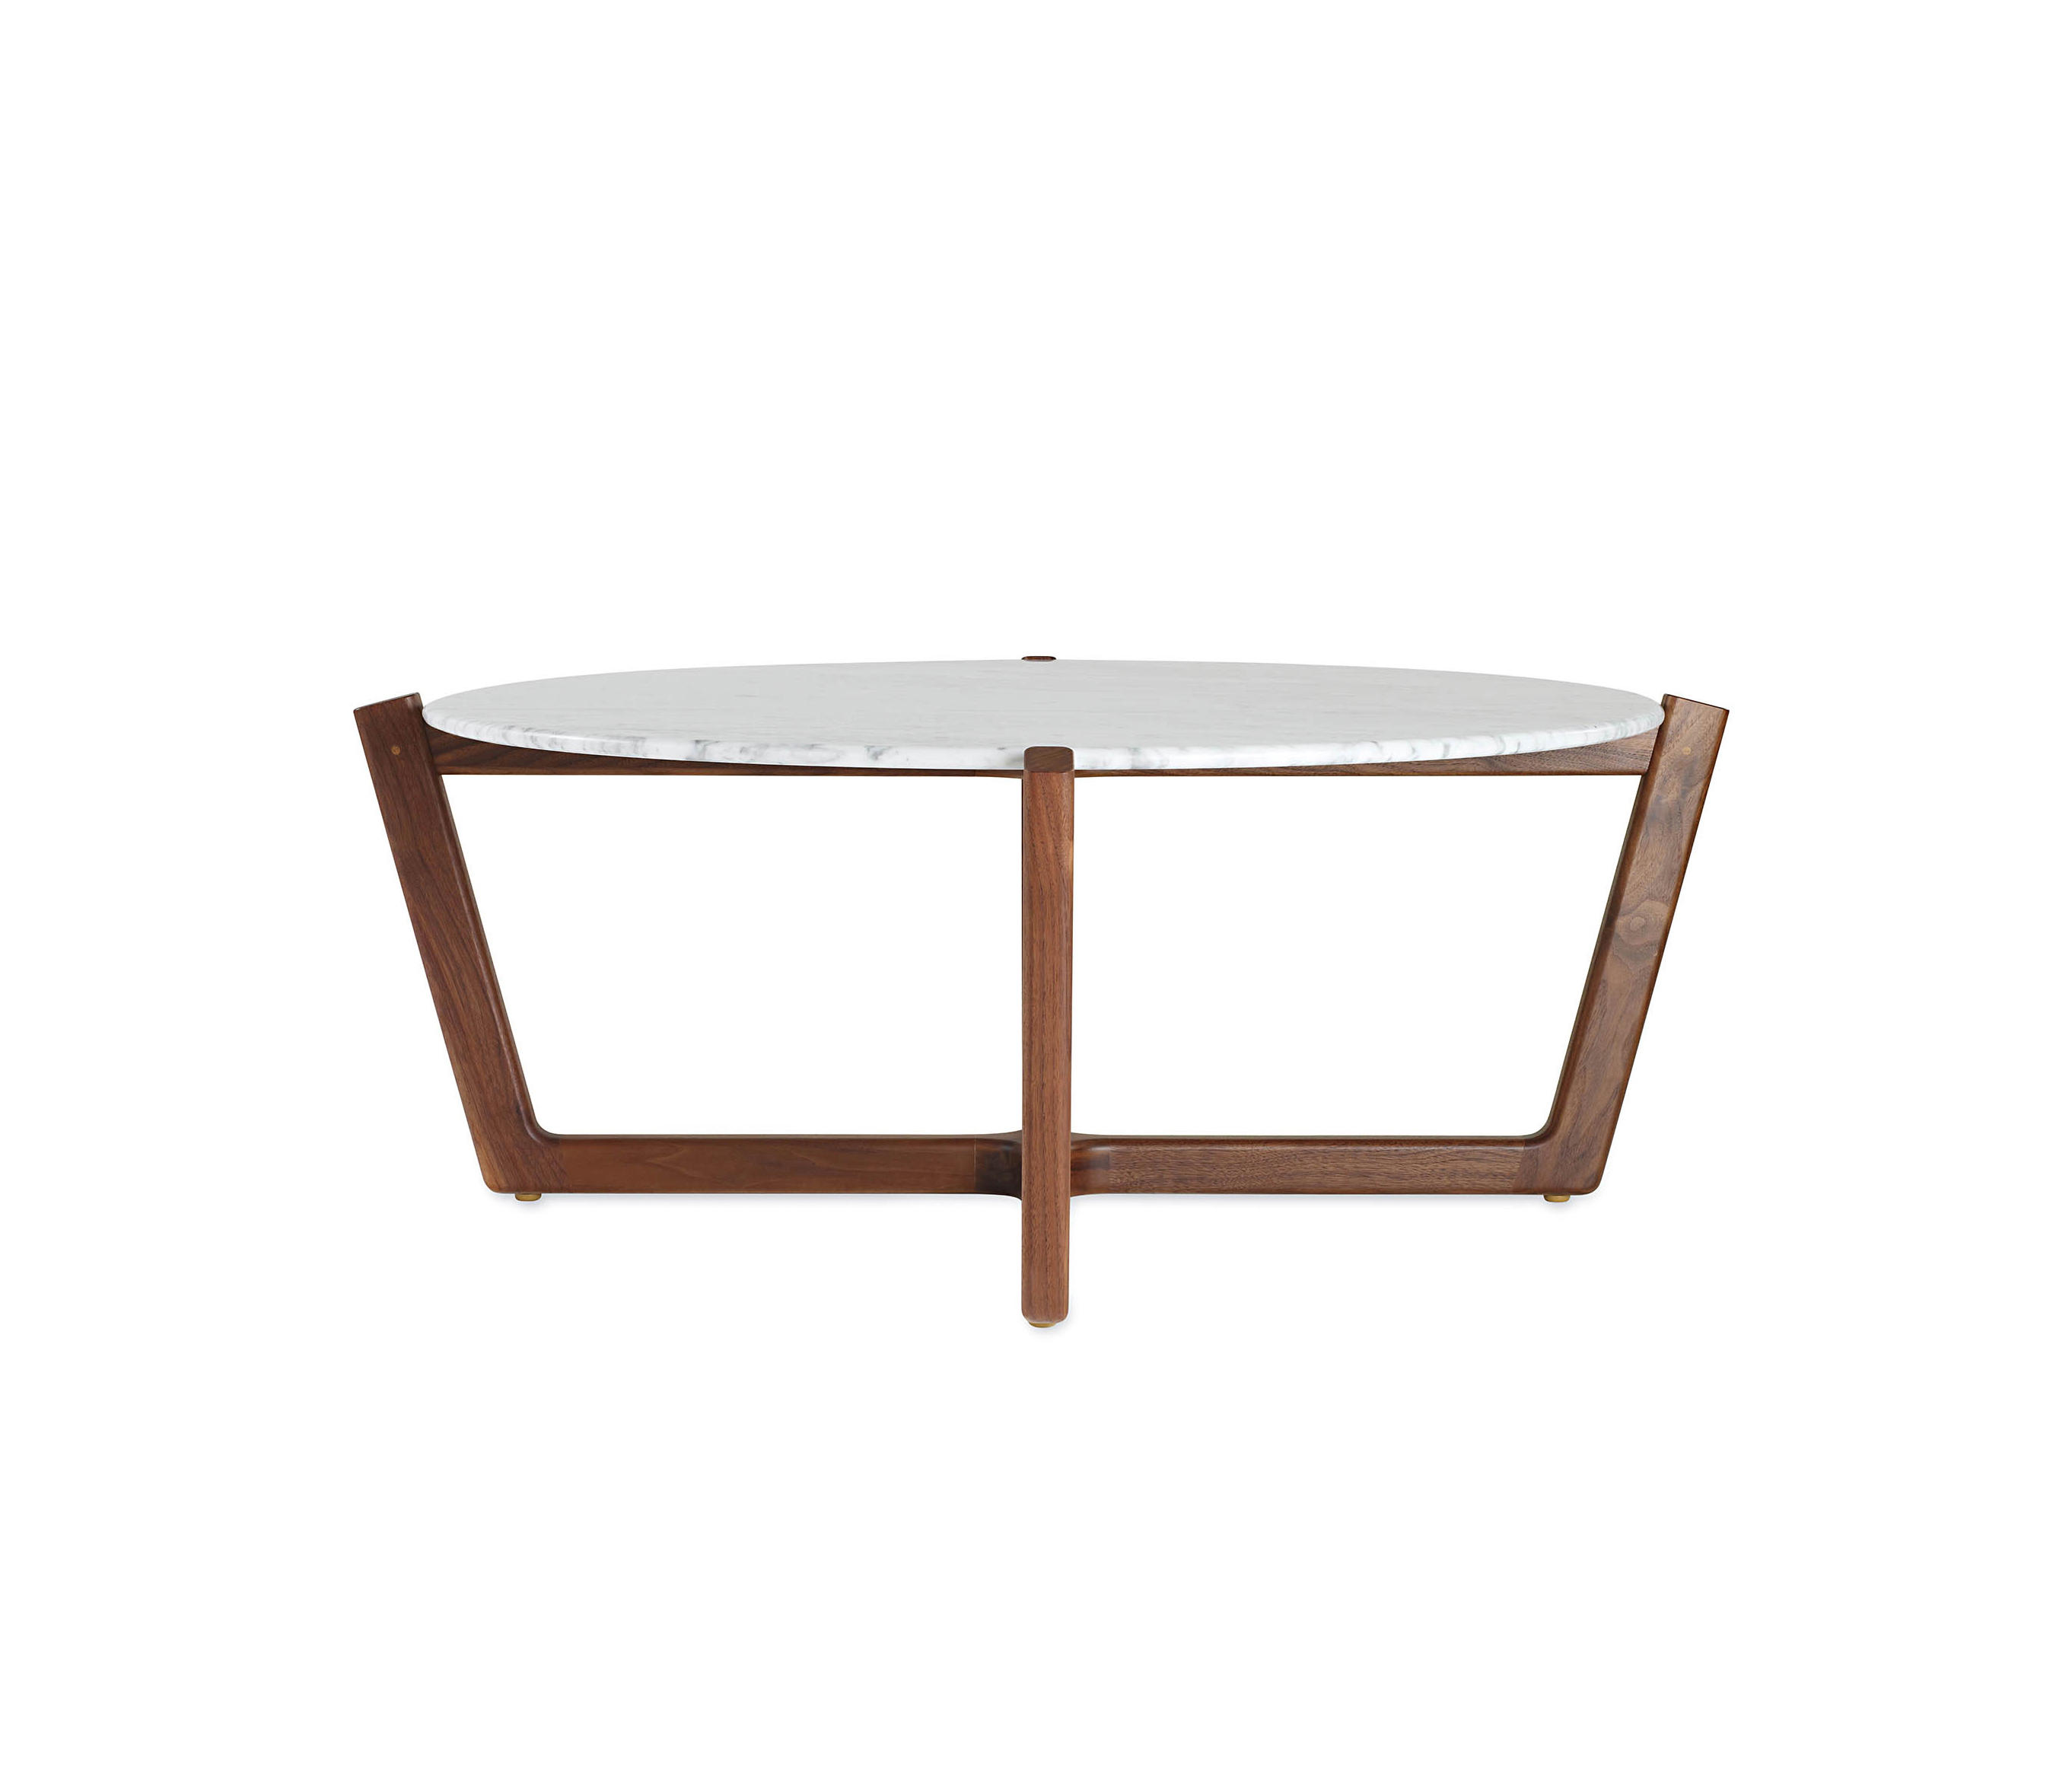 coffee table design within reach photo - 6